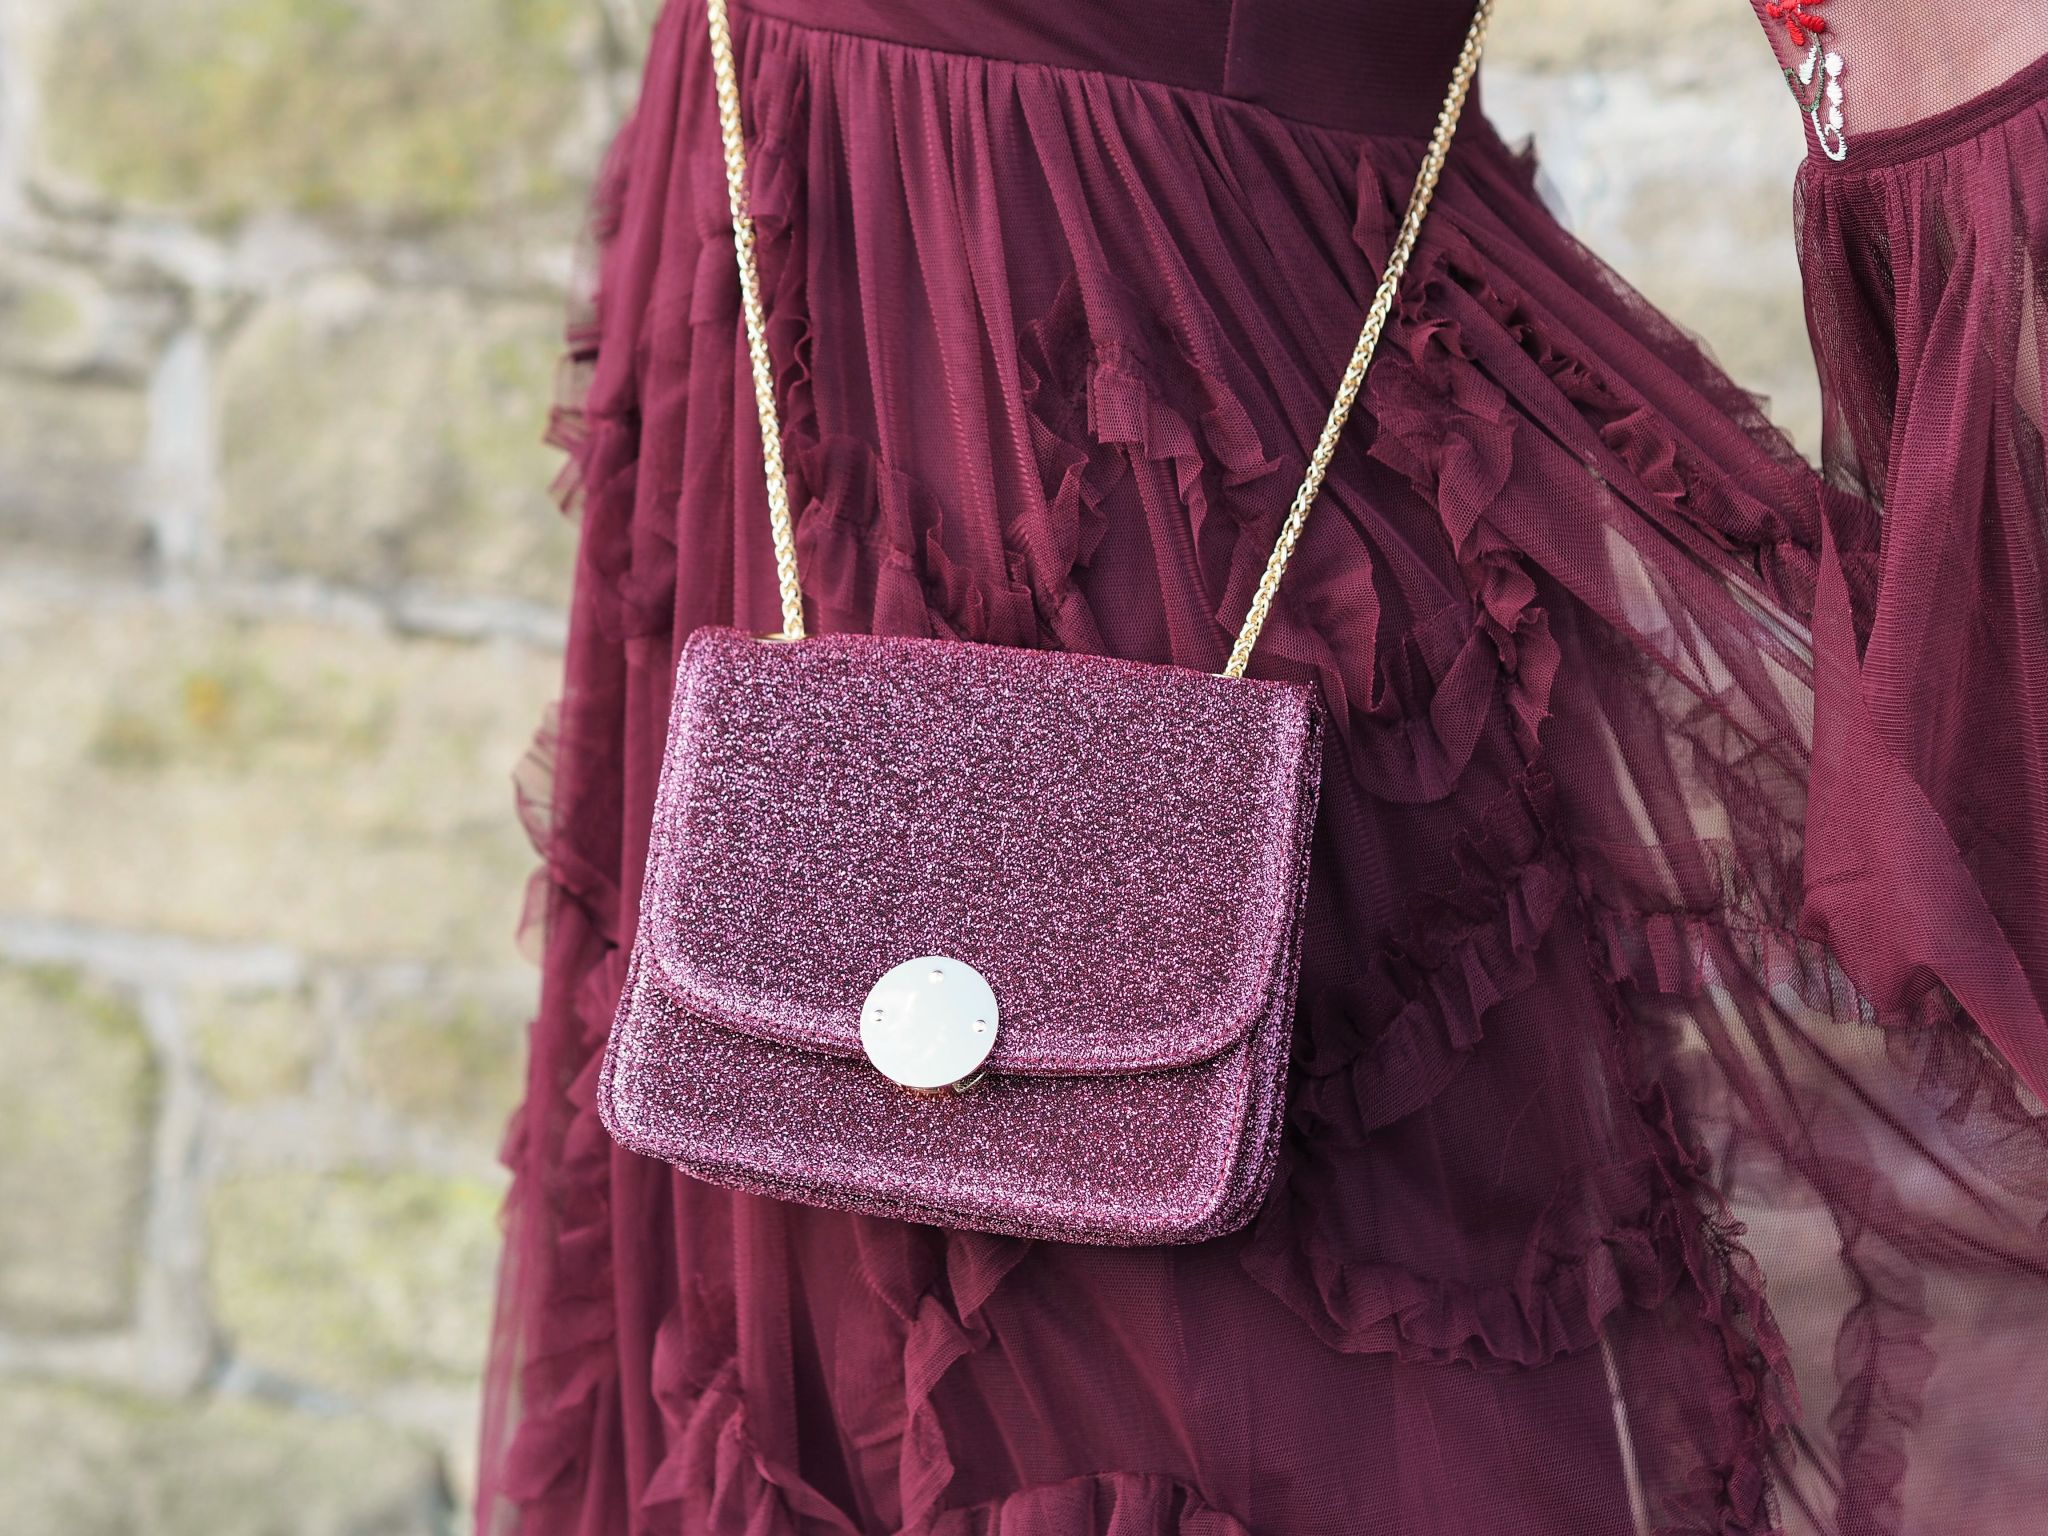 berry ruffled maxi dress and glittery bag